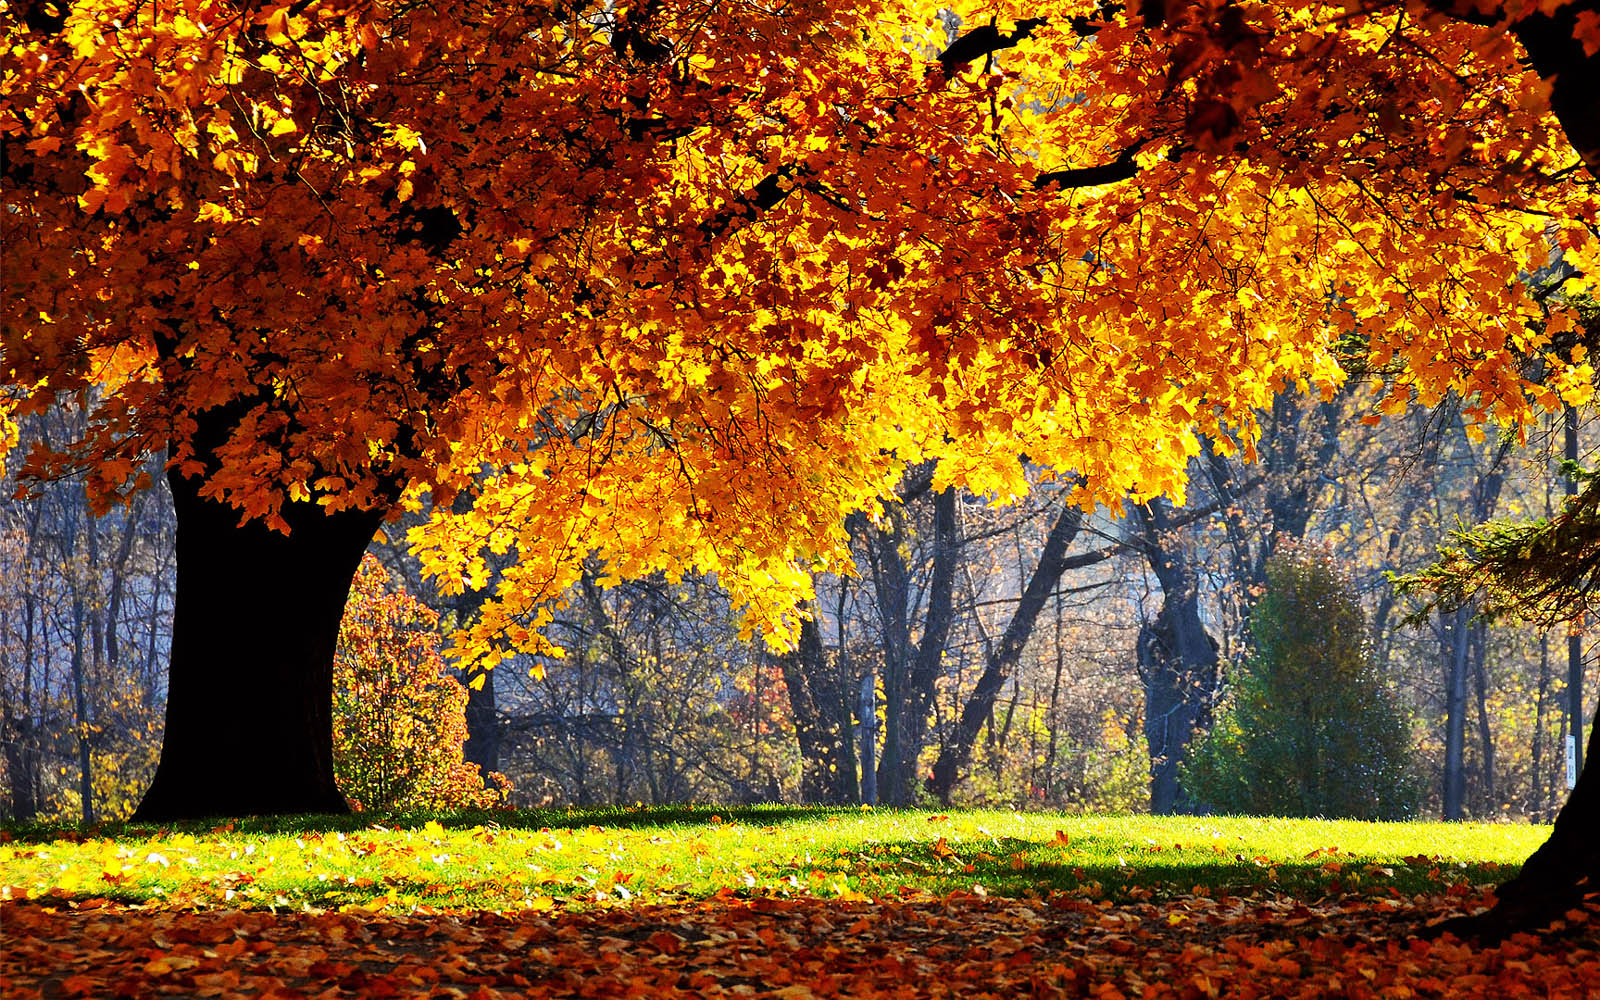 scenery autumn wallpapers backgrounds fall desktop scenic pretty scenes scene tree trees nature tag leaves november landscape widescreen 3d wide